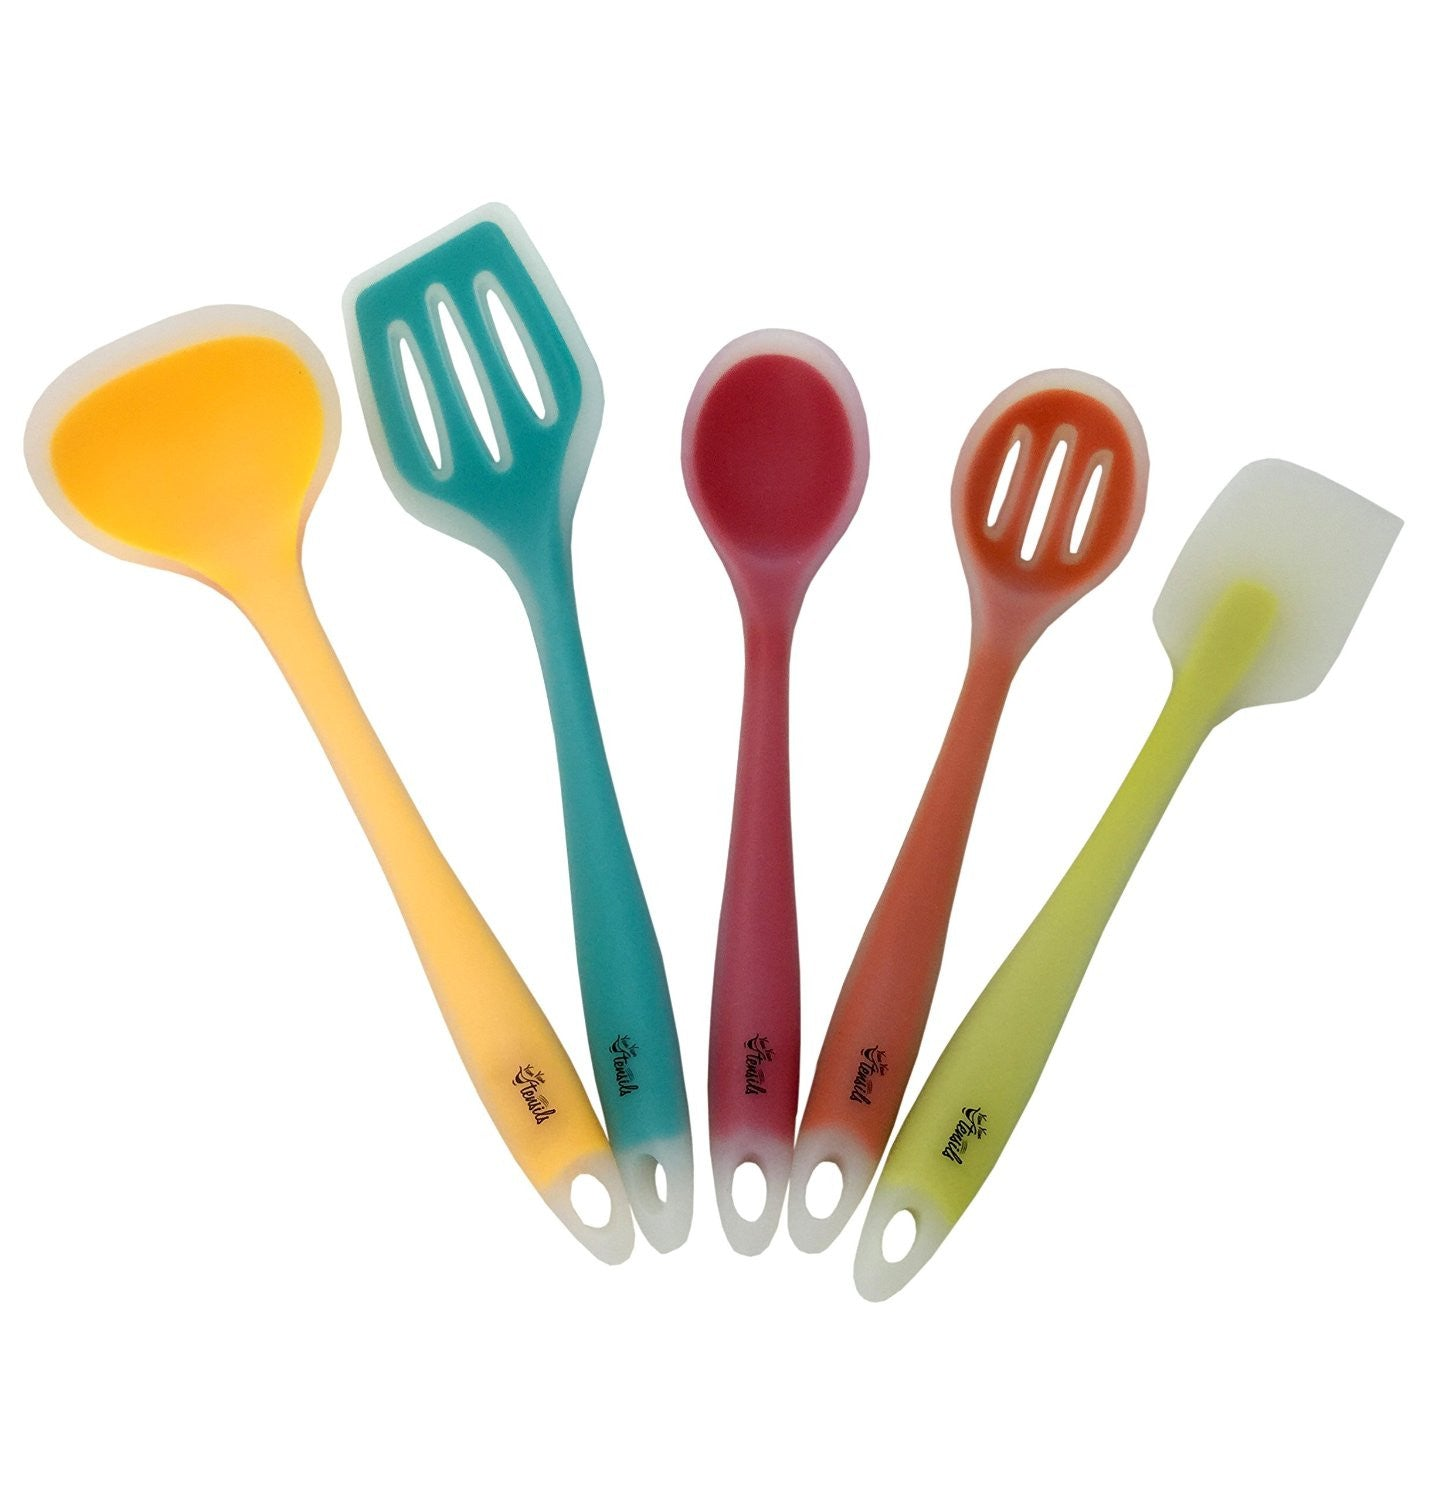 Superbe Silicone Cooking Utensils Set Of 5 For The Kitchen, One Piece Tools For  Long Lasting Strength U0026 Hygiene Safety, Colorful Core Utensil Pack, Heat  Resistant ...